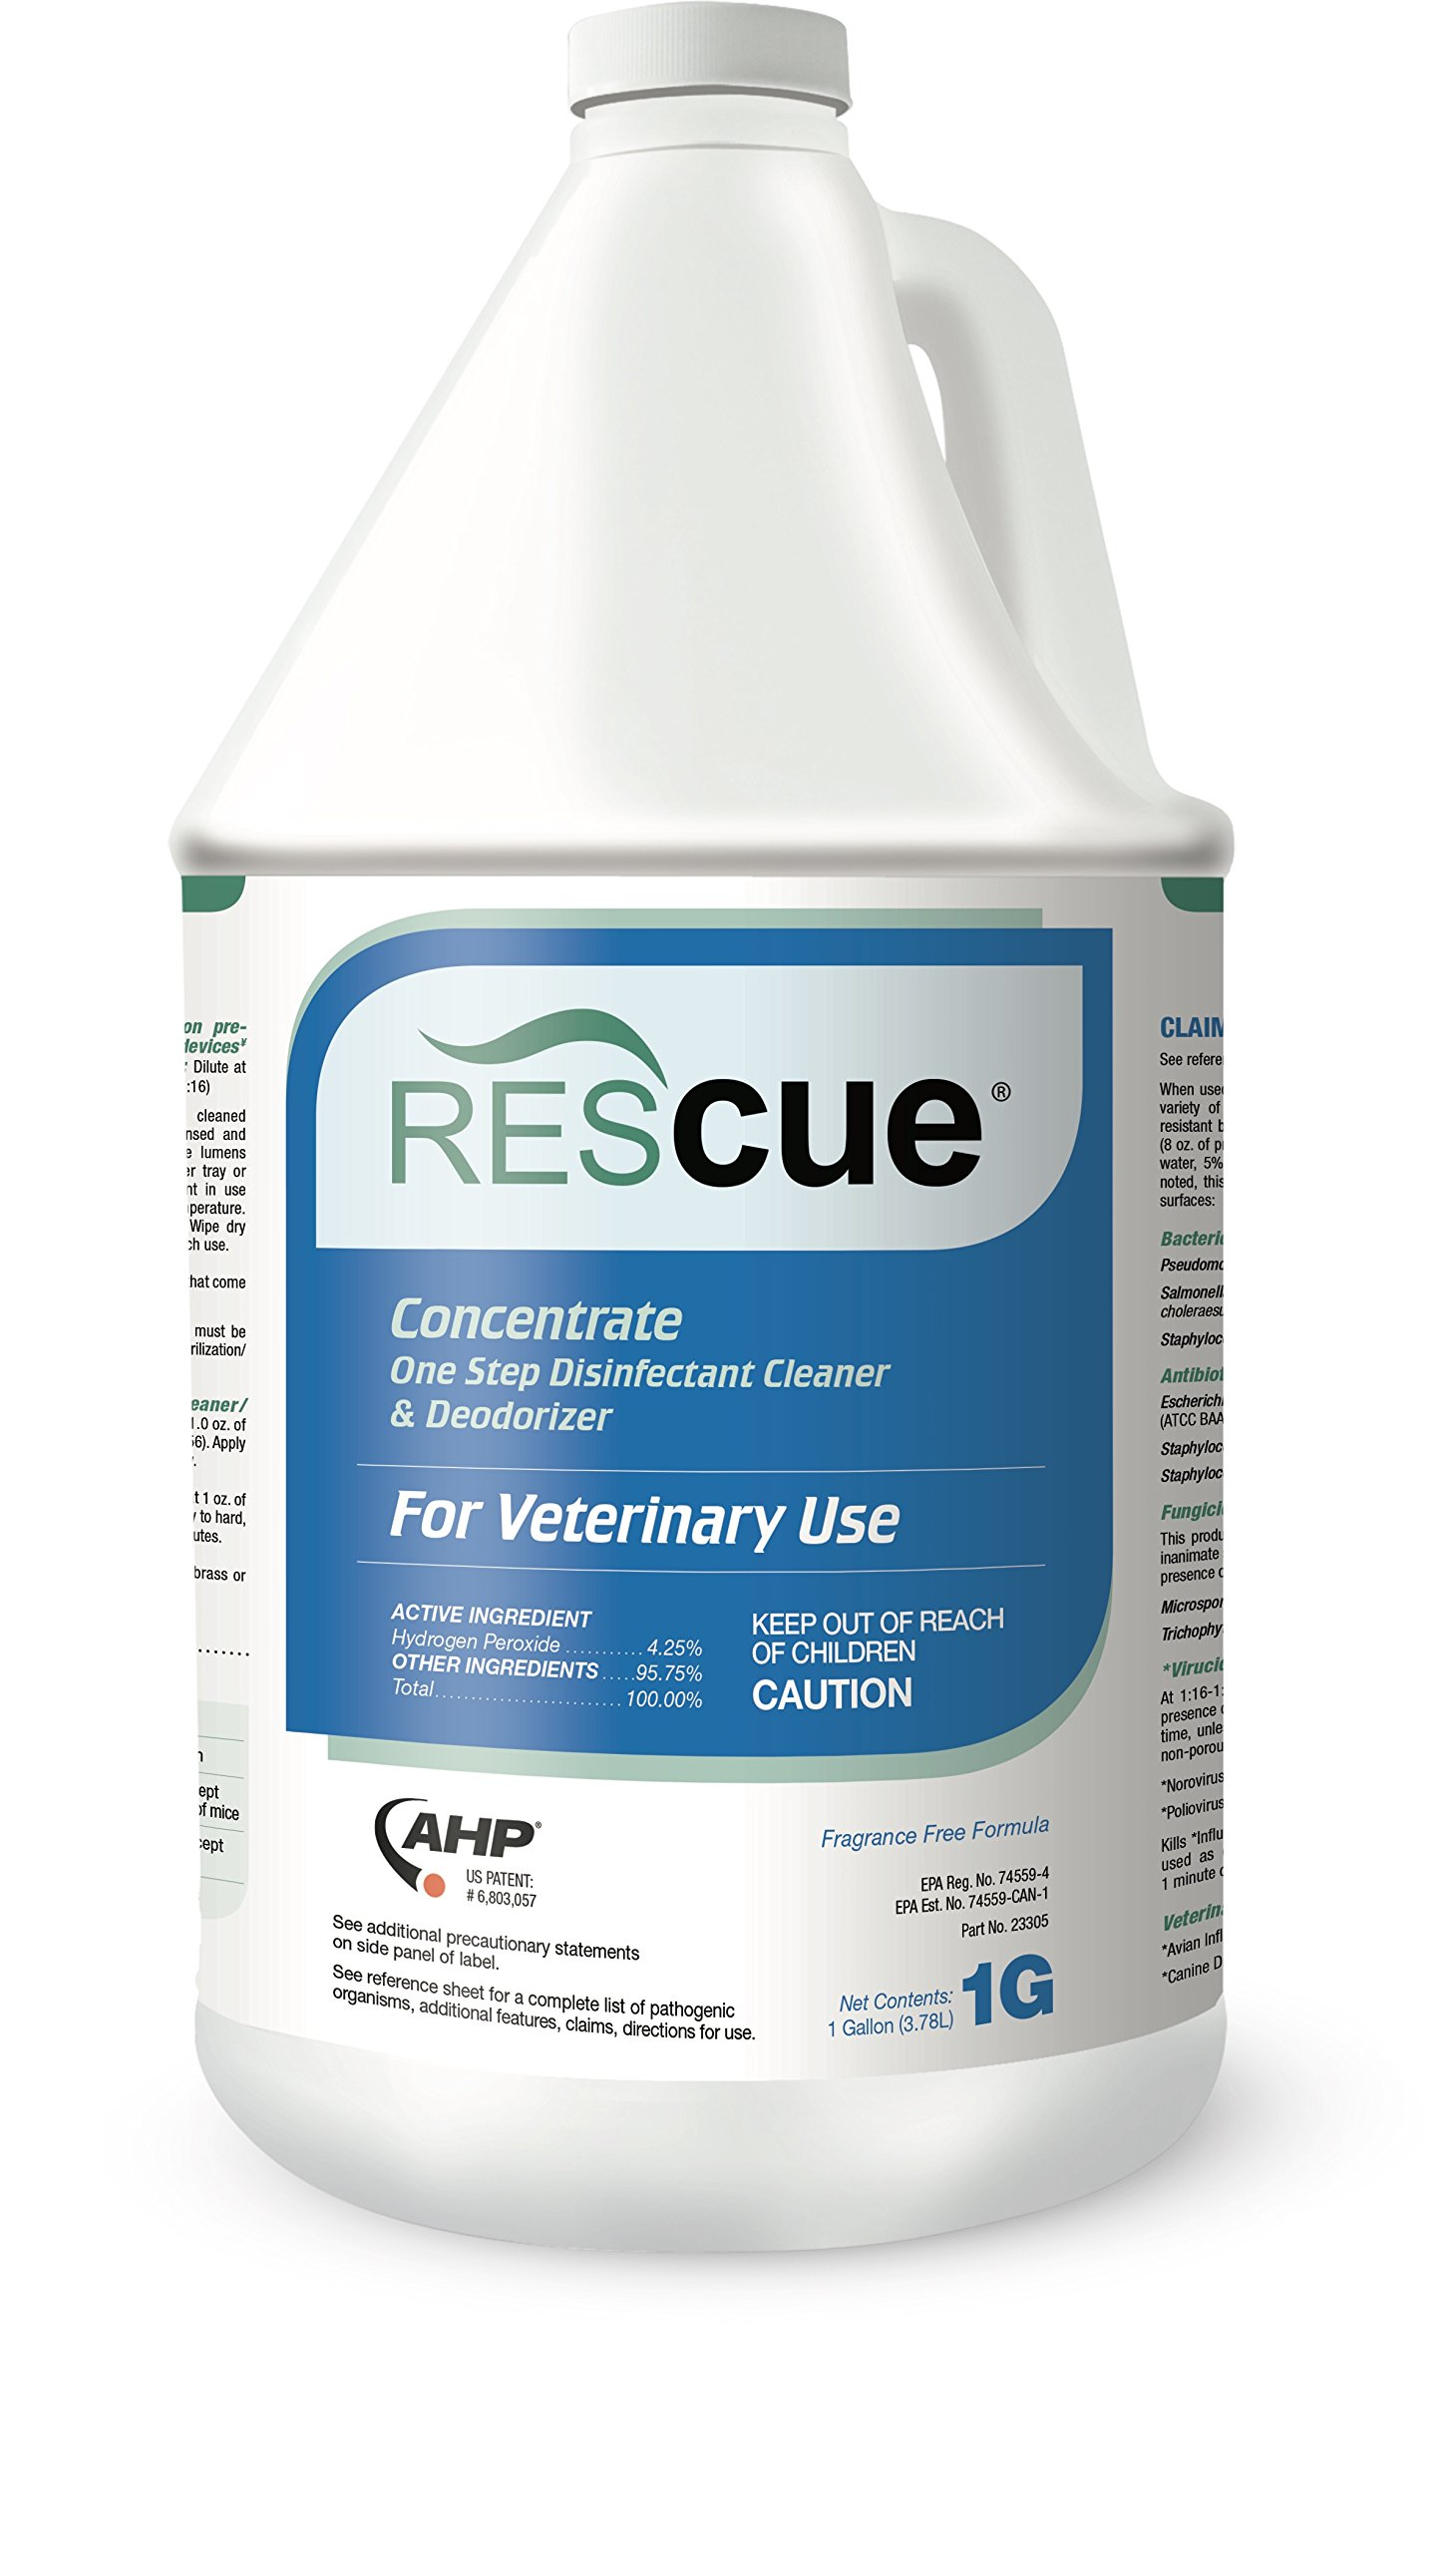 Rescue One-Step Disinfectant Cleaner & Deodorizer, Concentrate Bottle (1 Gallon)